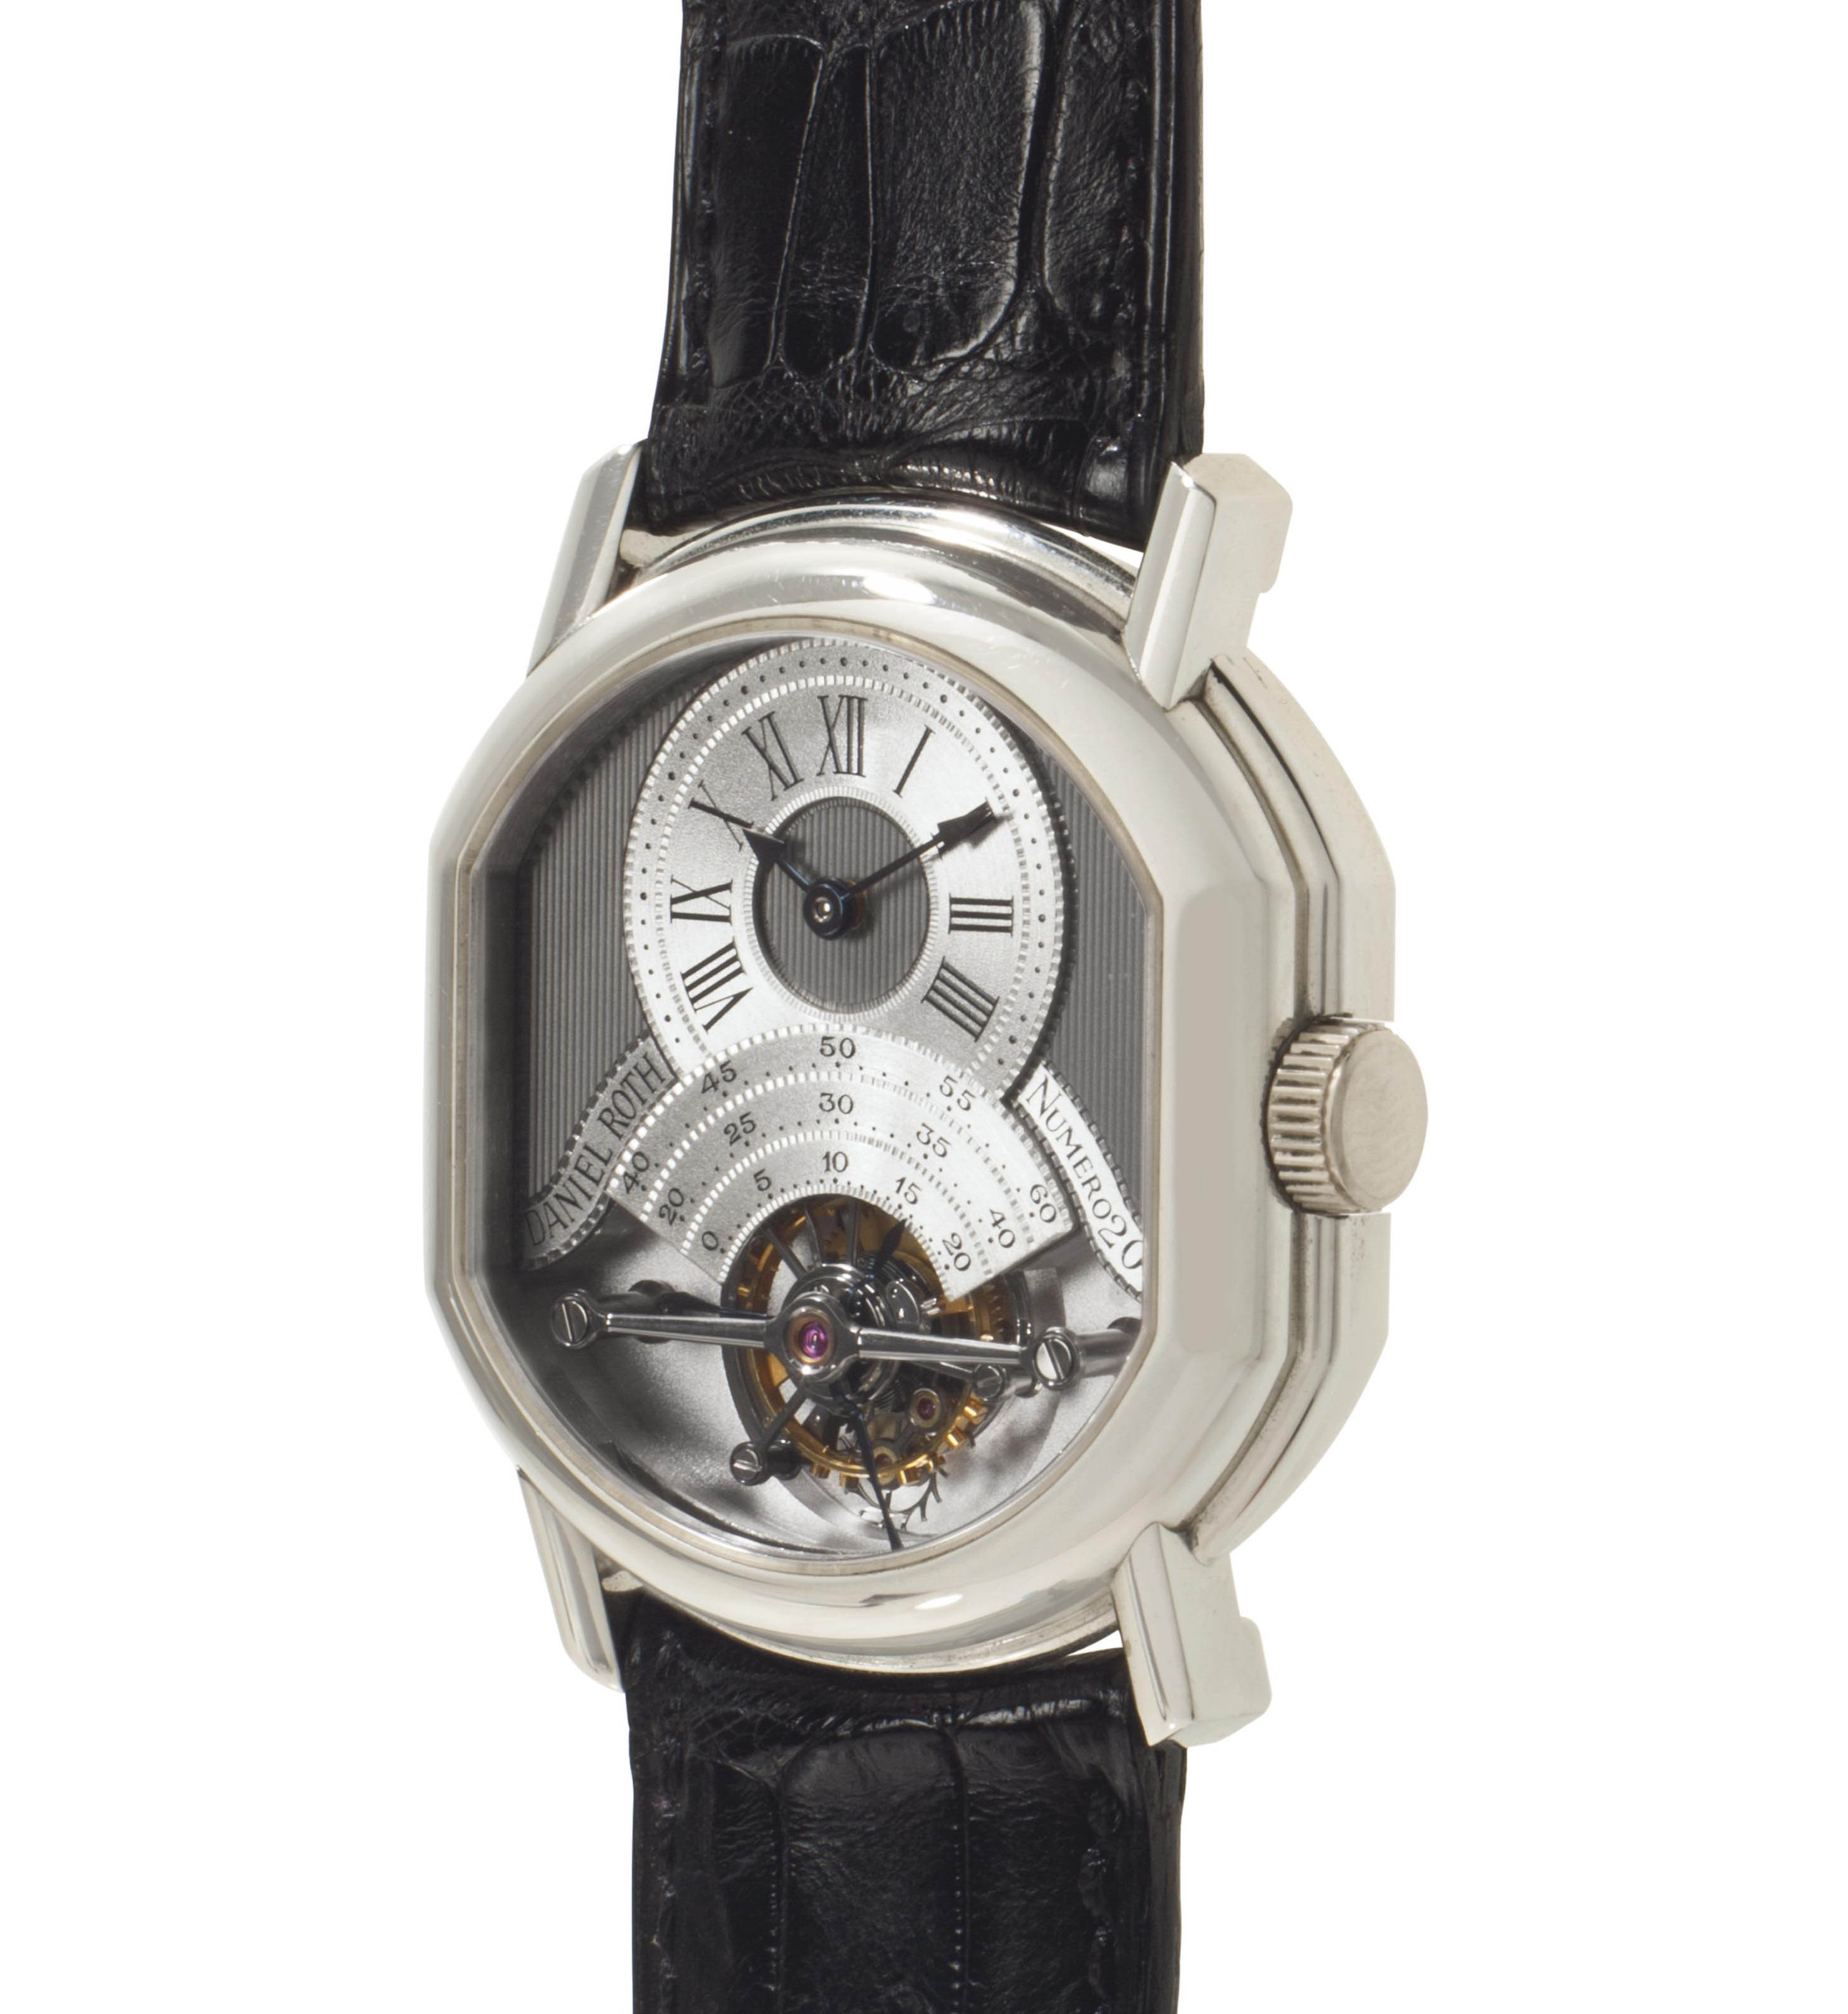 Daniel Roth. A Fine and Rare Platinum Oval-shaped Double Dialed Tourbillon Wristwatch with Date and Power Reserve